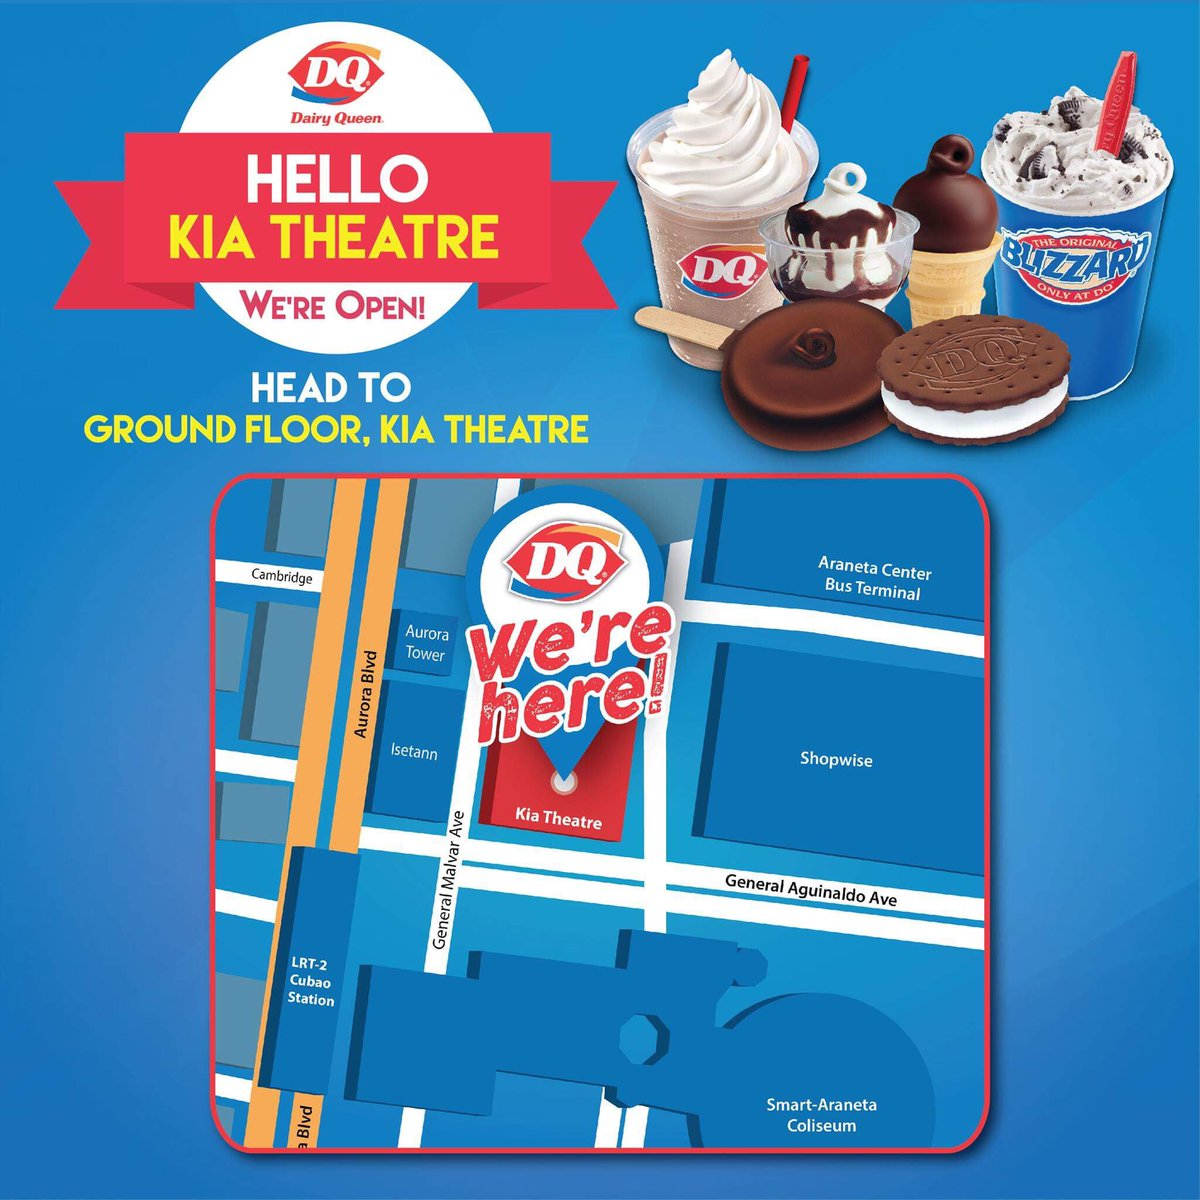 Yay! We are thrilled to have another new DQ Store! Visit us at our newly opened store in Kia Theatre. See you there! #DairyQueenPH https://t.co/kNcg9y6H4V